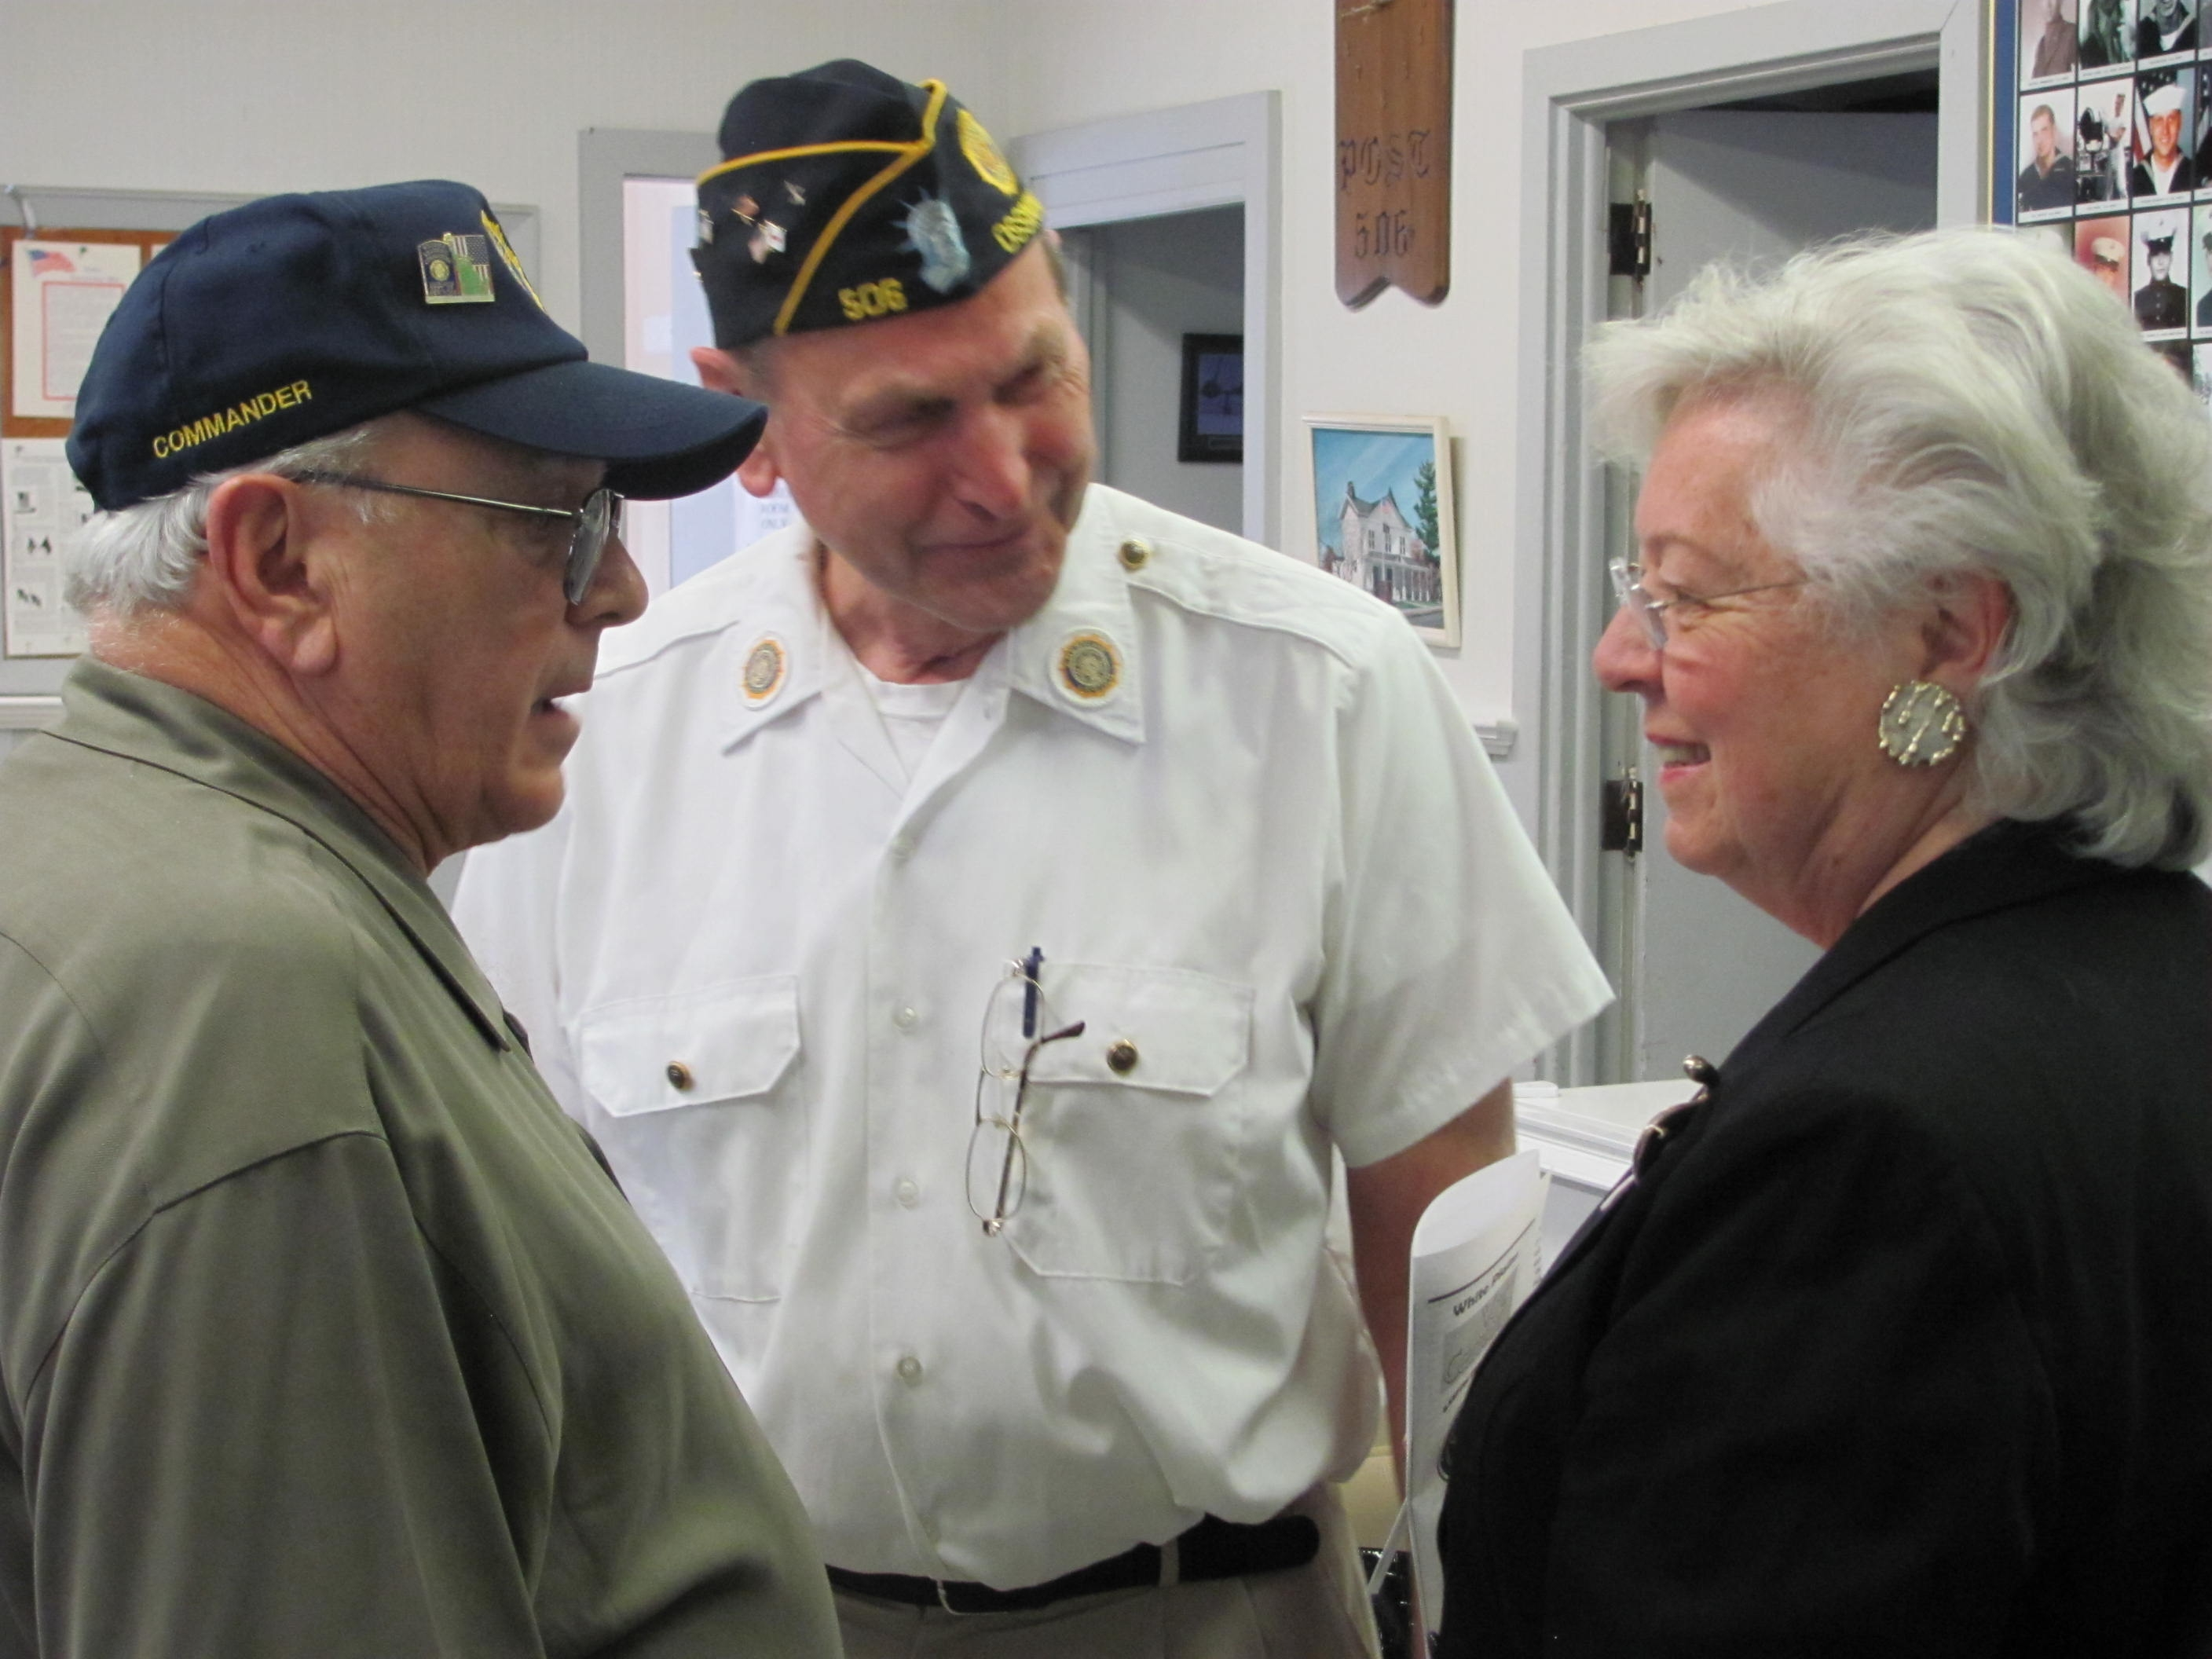 Sandy attended a press conference at the American Legion Post 506 announcing a new state program starting in late 2013 in Westchester and Putnam to provide peer-to-peer services for returning military veterans.